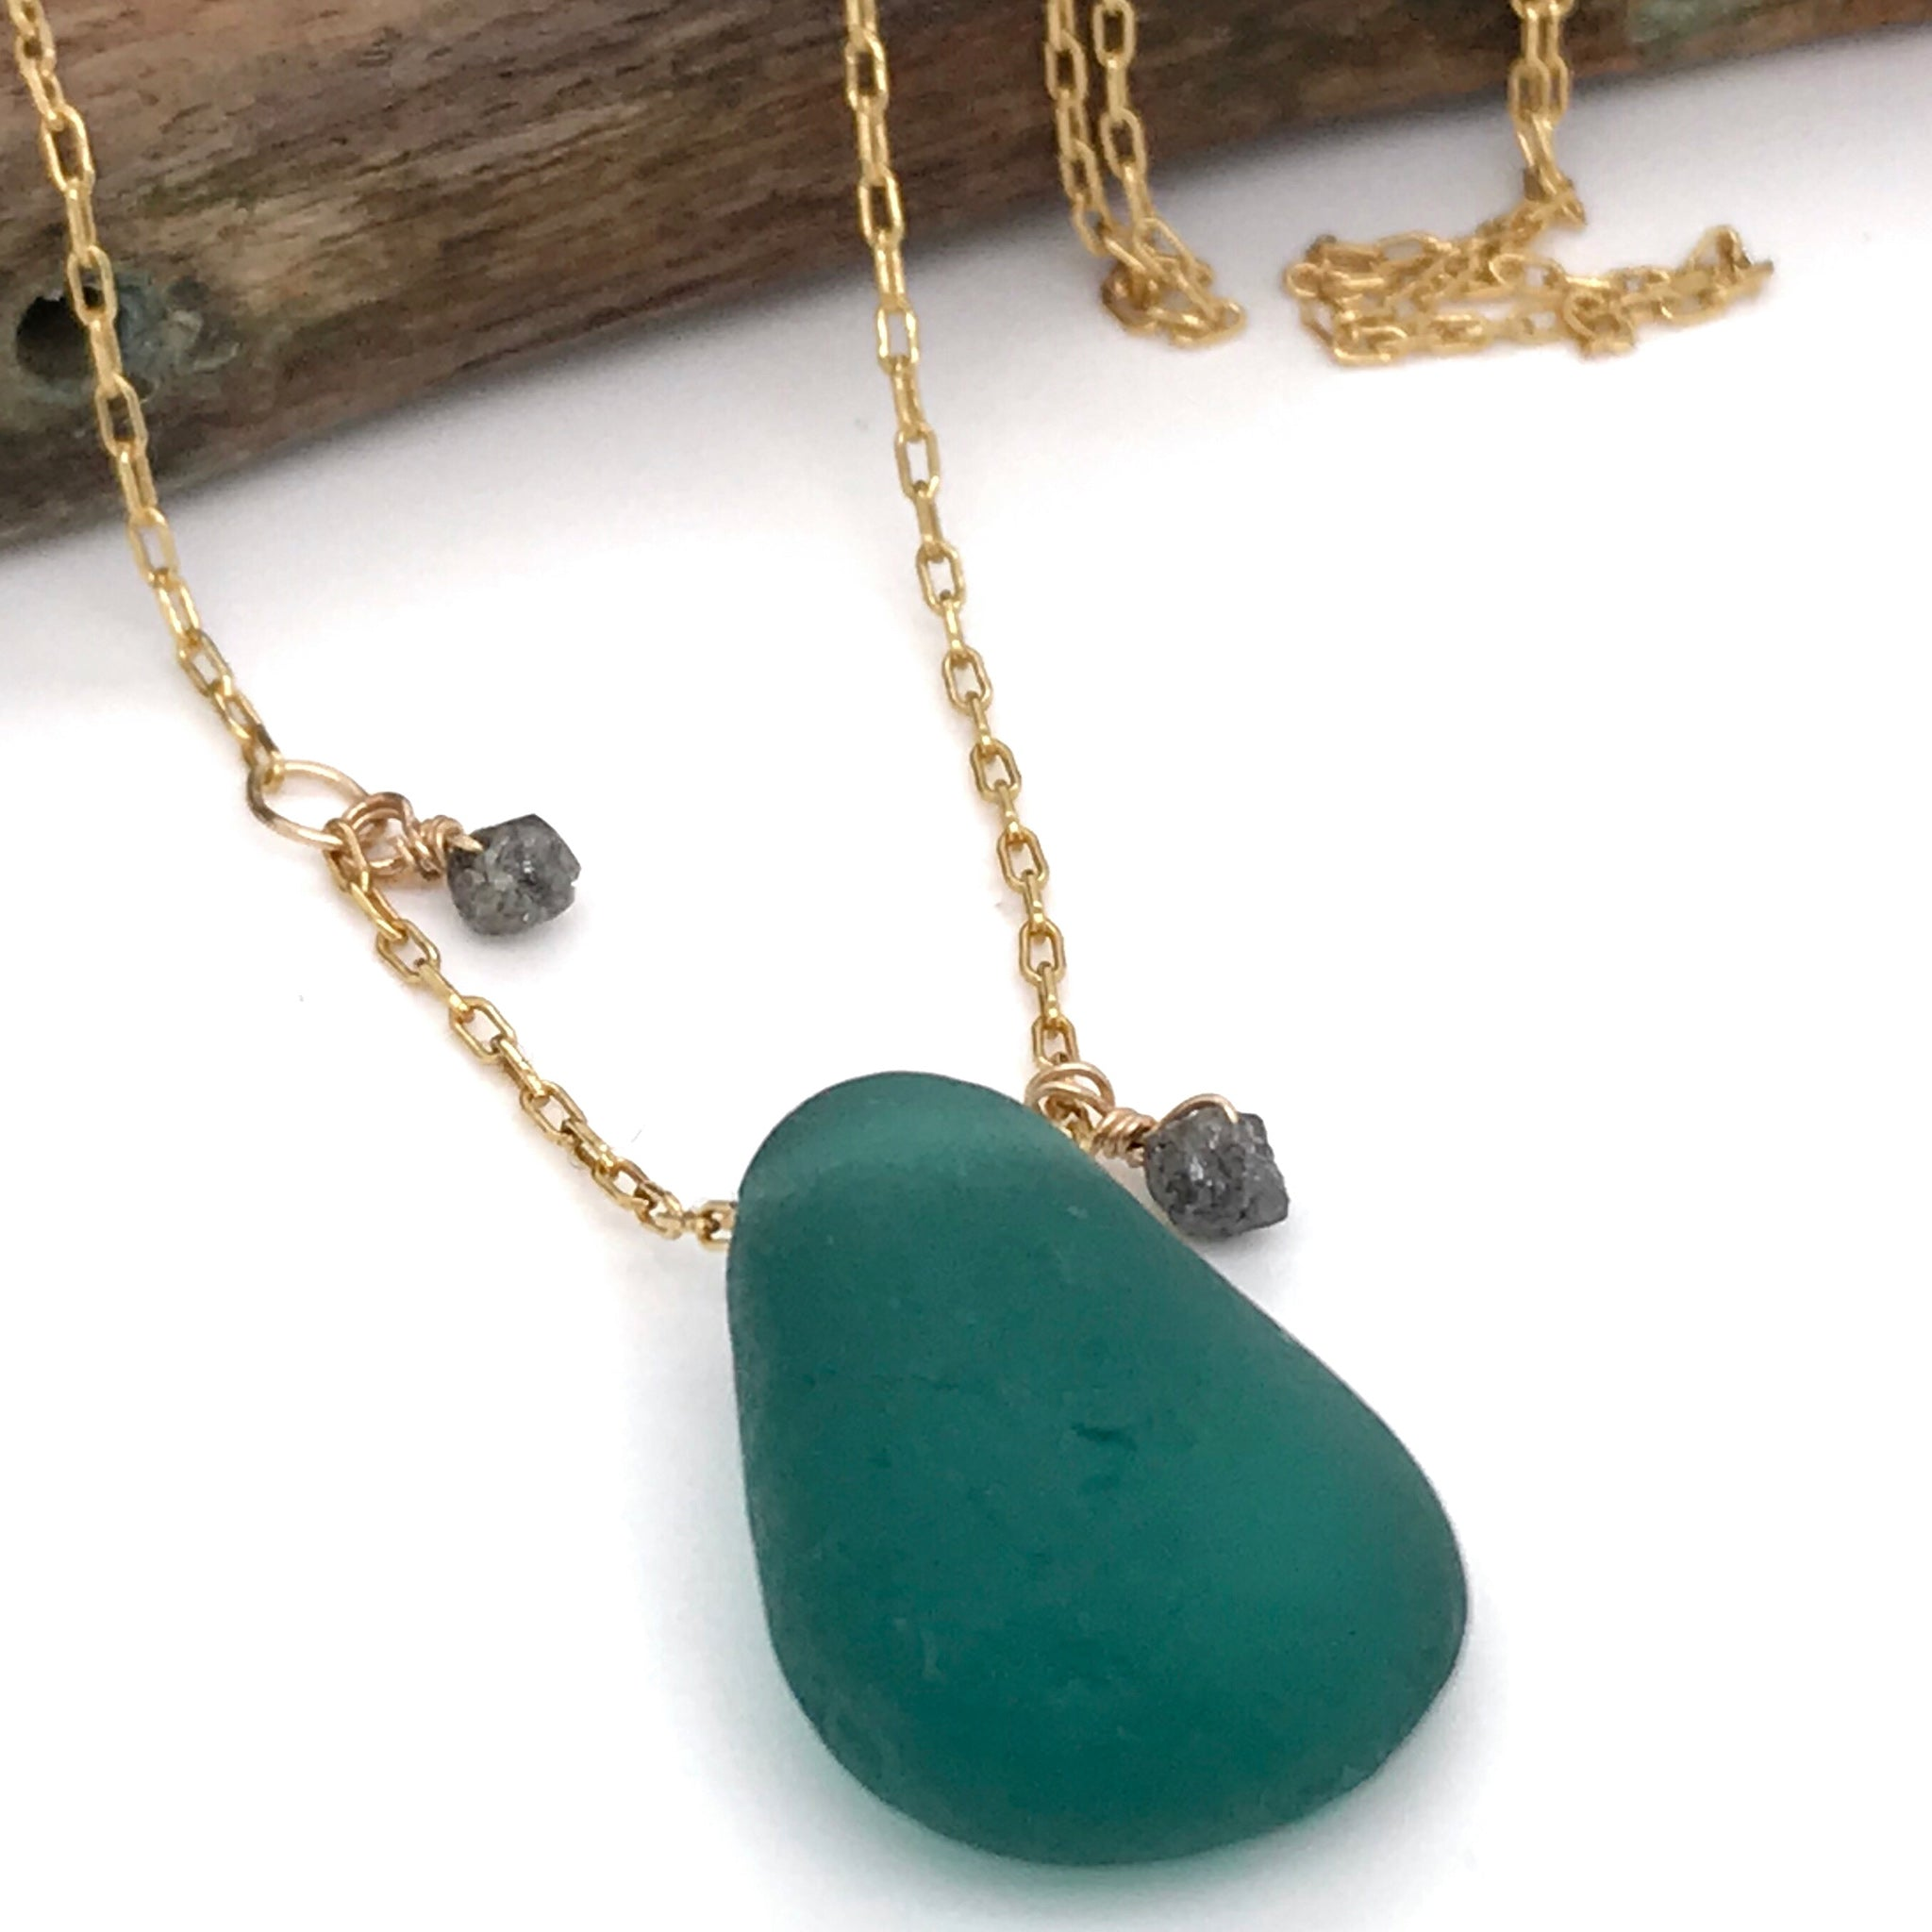 emerald green seaglass necklace long gold chain and rough cut diamonds Kriket Broadhurst jewellery Sydney